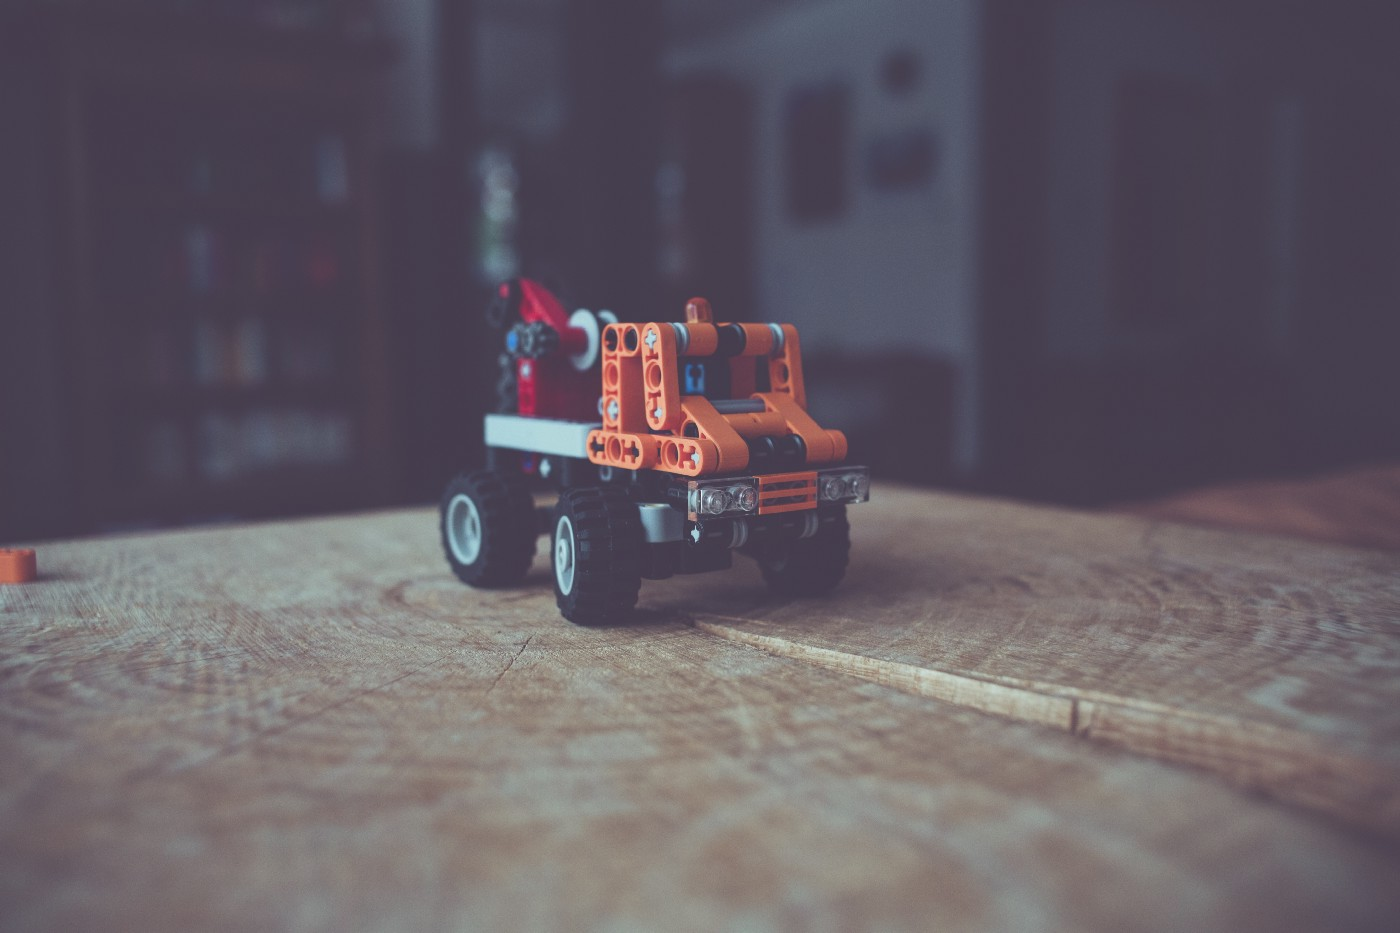 toy truck on a tabletop